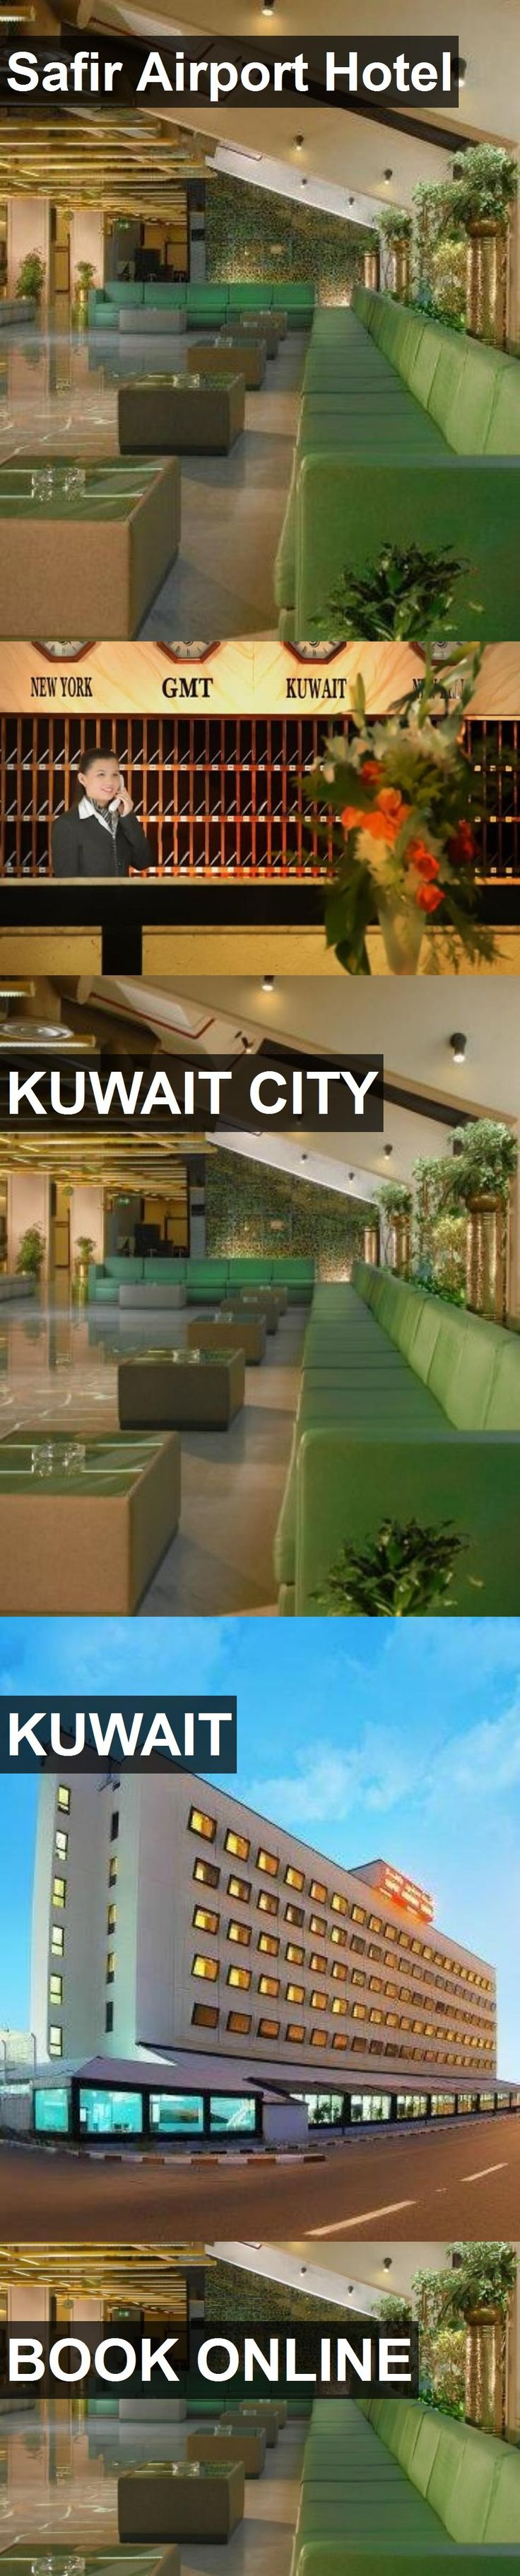 Safir Airport Hotel in Kuwait City, Kuwait. For more information, photos, reviews and best prices please follow the link. #Kuwait #KuwaitCity #travel #vacation #hotel